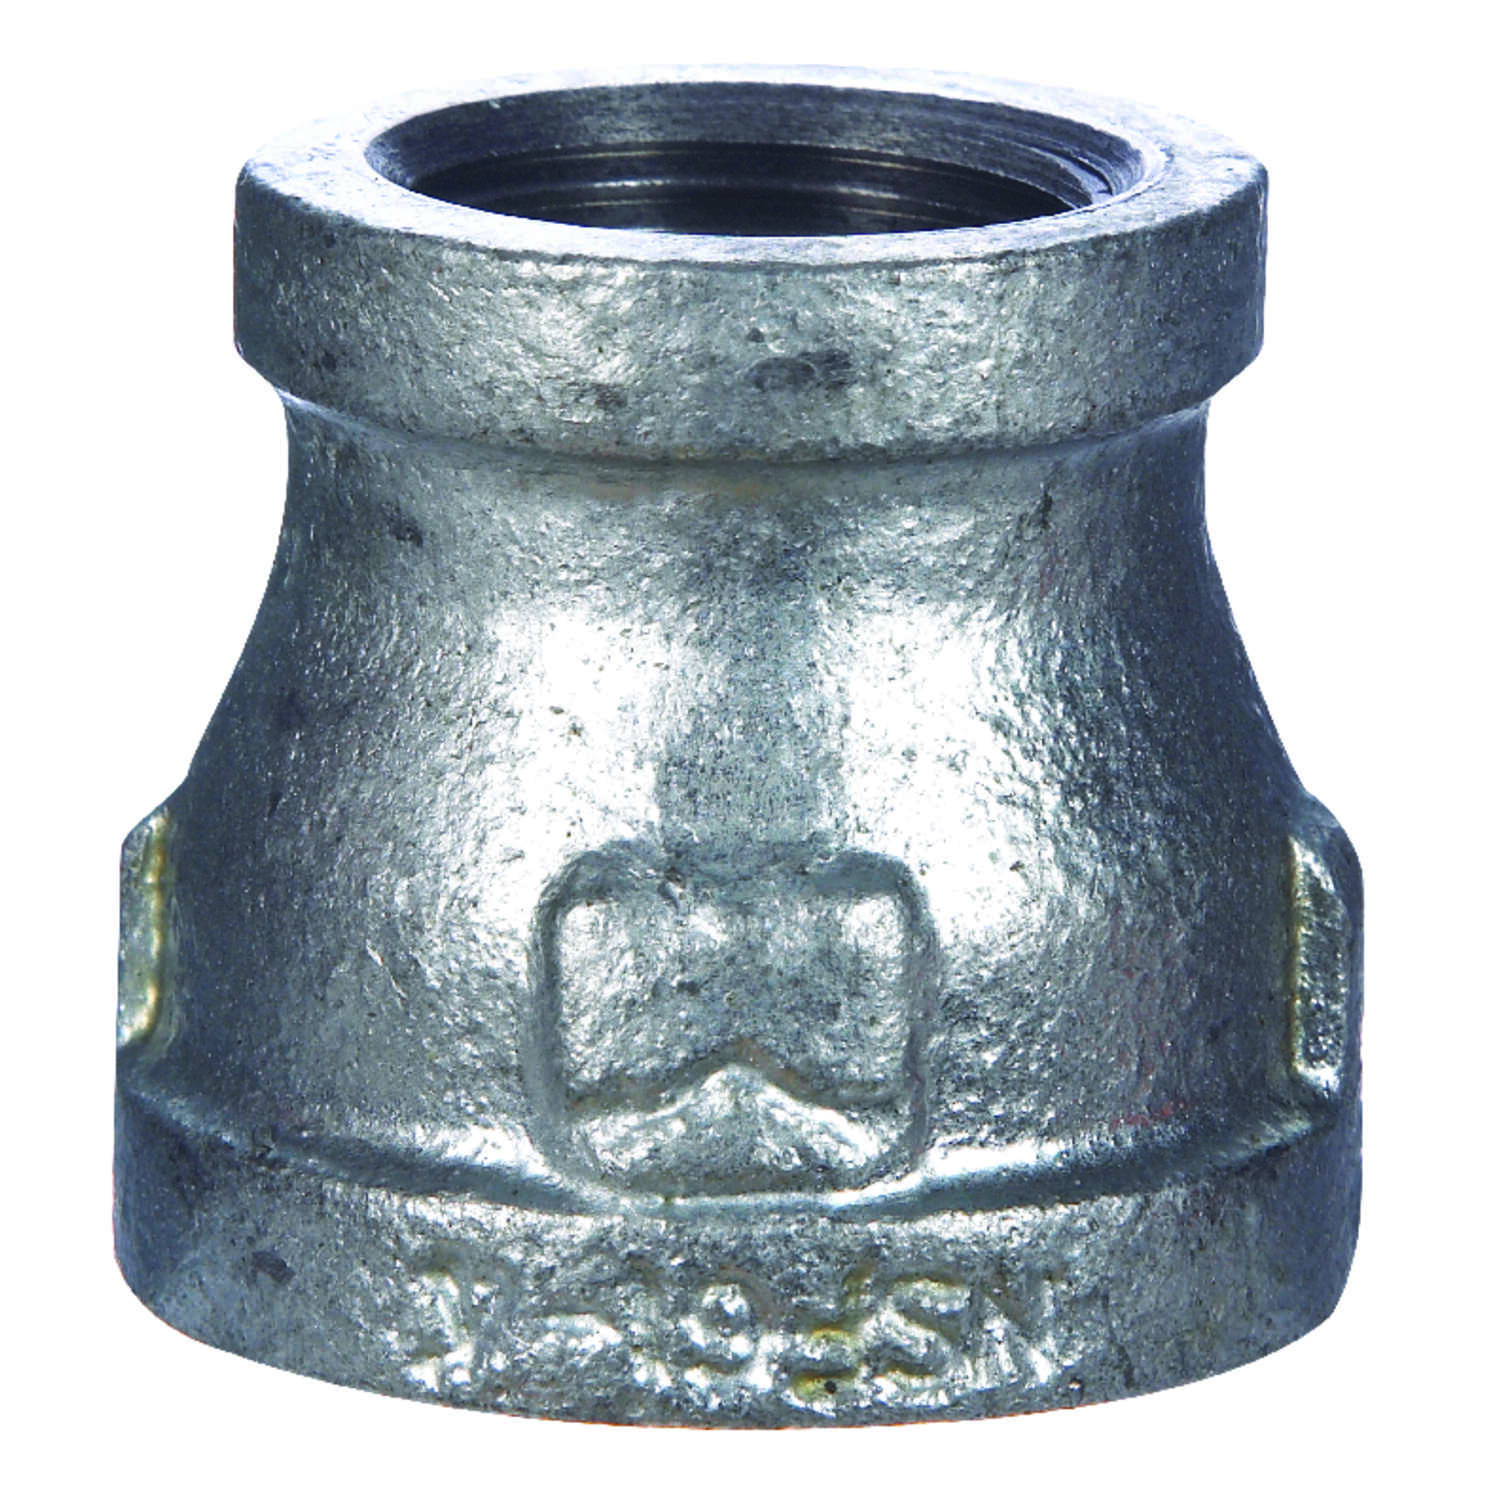 B & K  1/4 in. FPT   x 1/8 in. Dia. FPT  Galvanized  Malleable Iron  Reducing Coupling